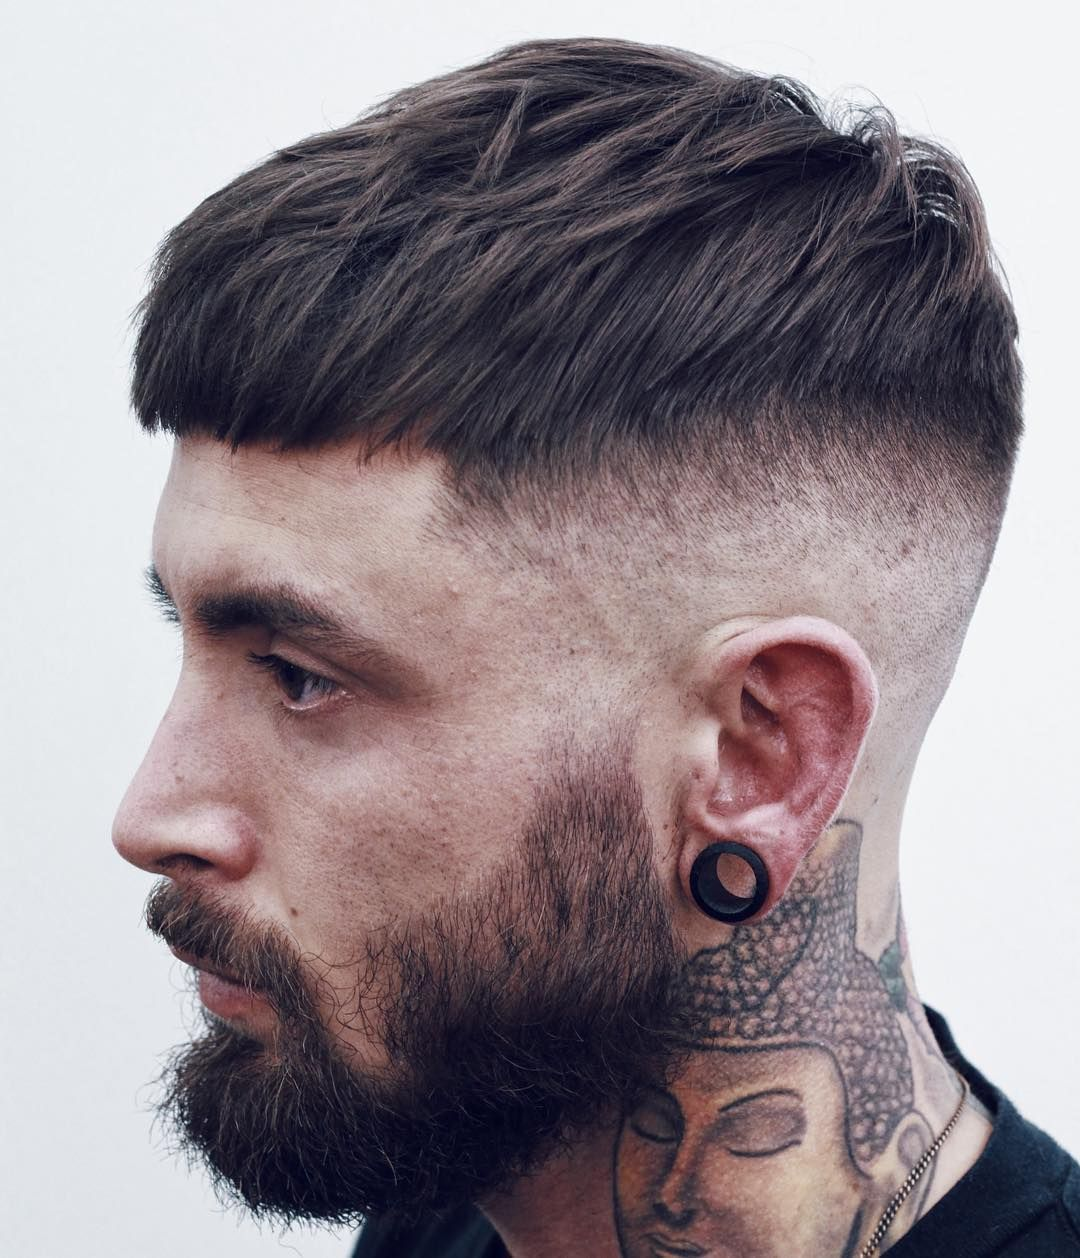 Superb Short Hairstyles For MenFacebookGoogle+InstagramPinterestTwitter